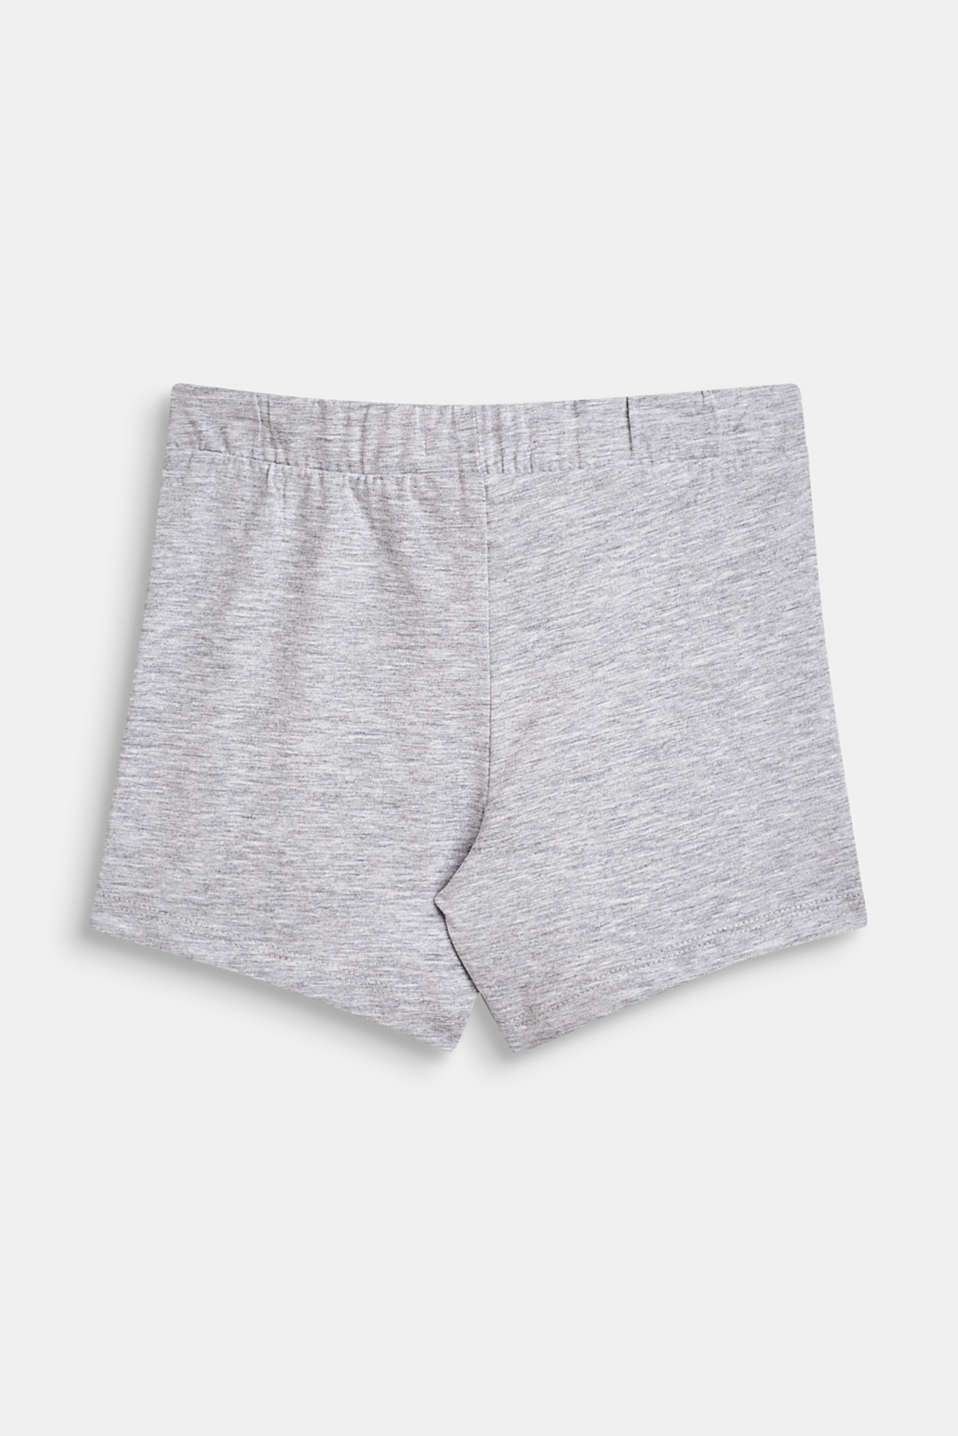 Jersey shorts with a glittering toucan print, HEATHER SILVER, detail image number 1